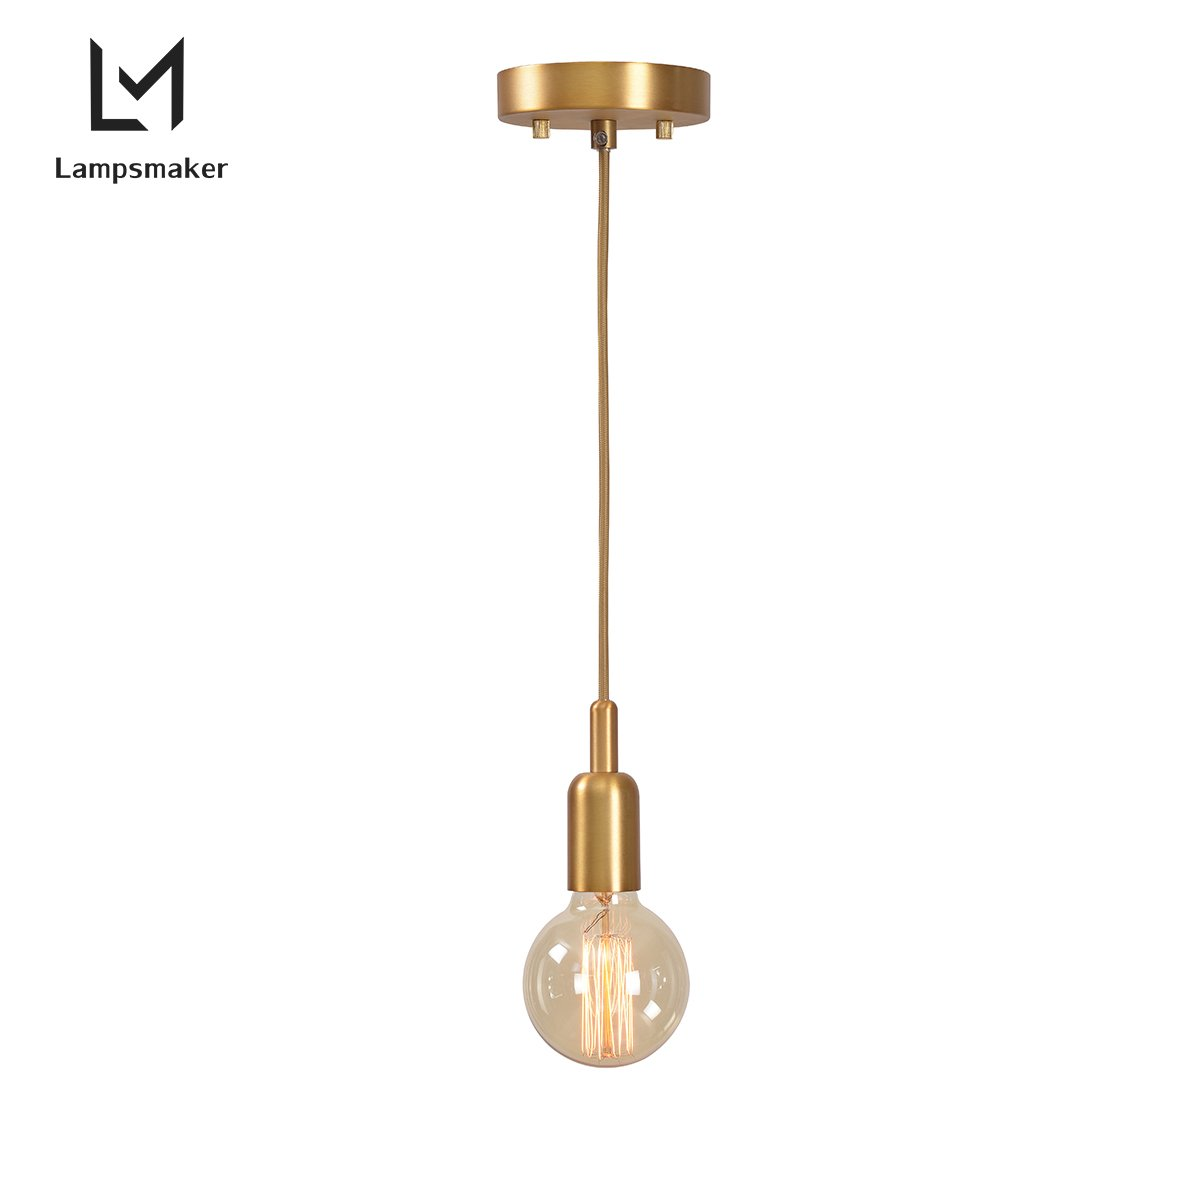 Lampsmaker E26 Light Socket Vintage Ceiling Hanging Light Fixtures,Mental Base Pendant Kit Textile Cord Lamp Holder With Home(Not Bulb) 82845POL-AMB (Brass)